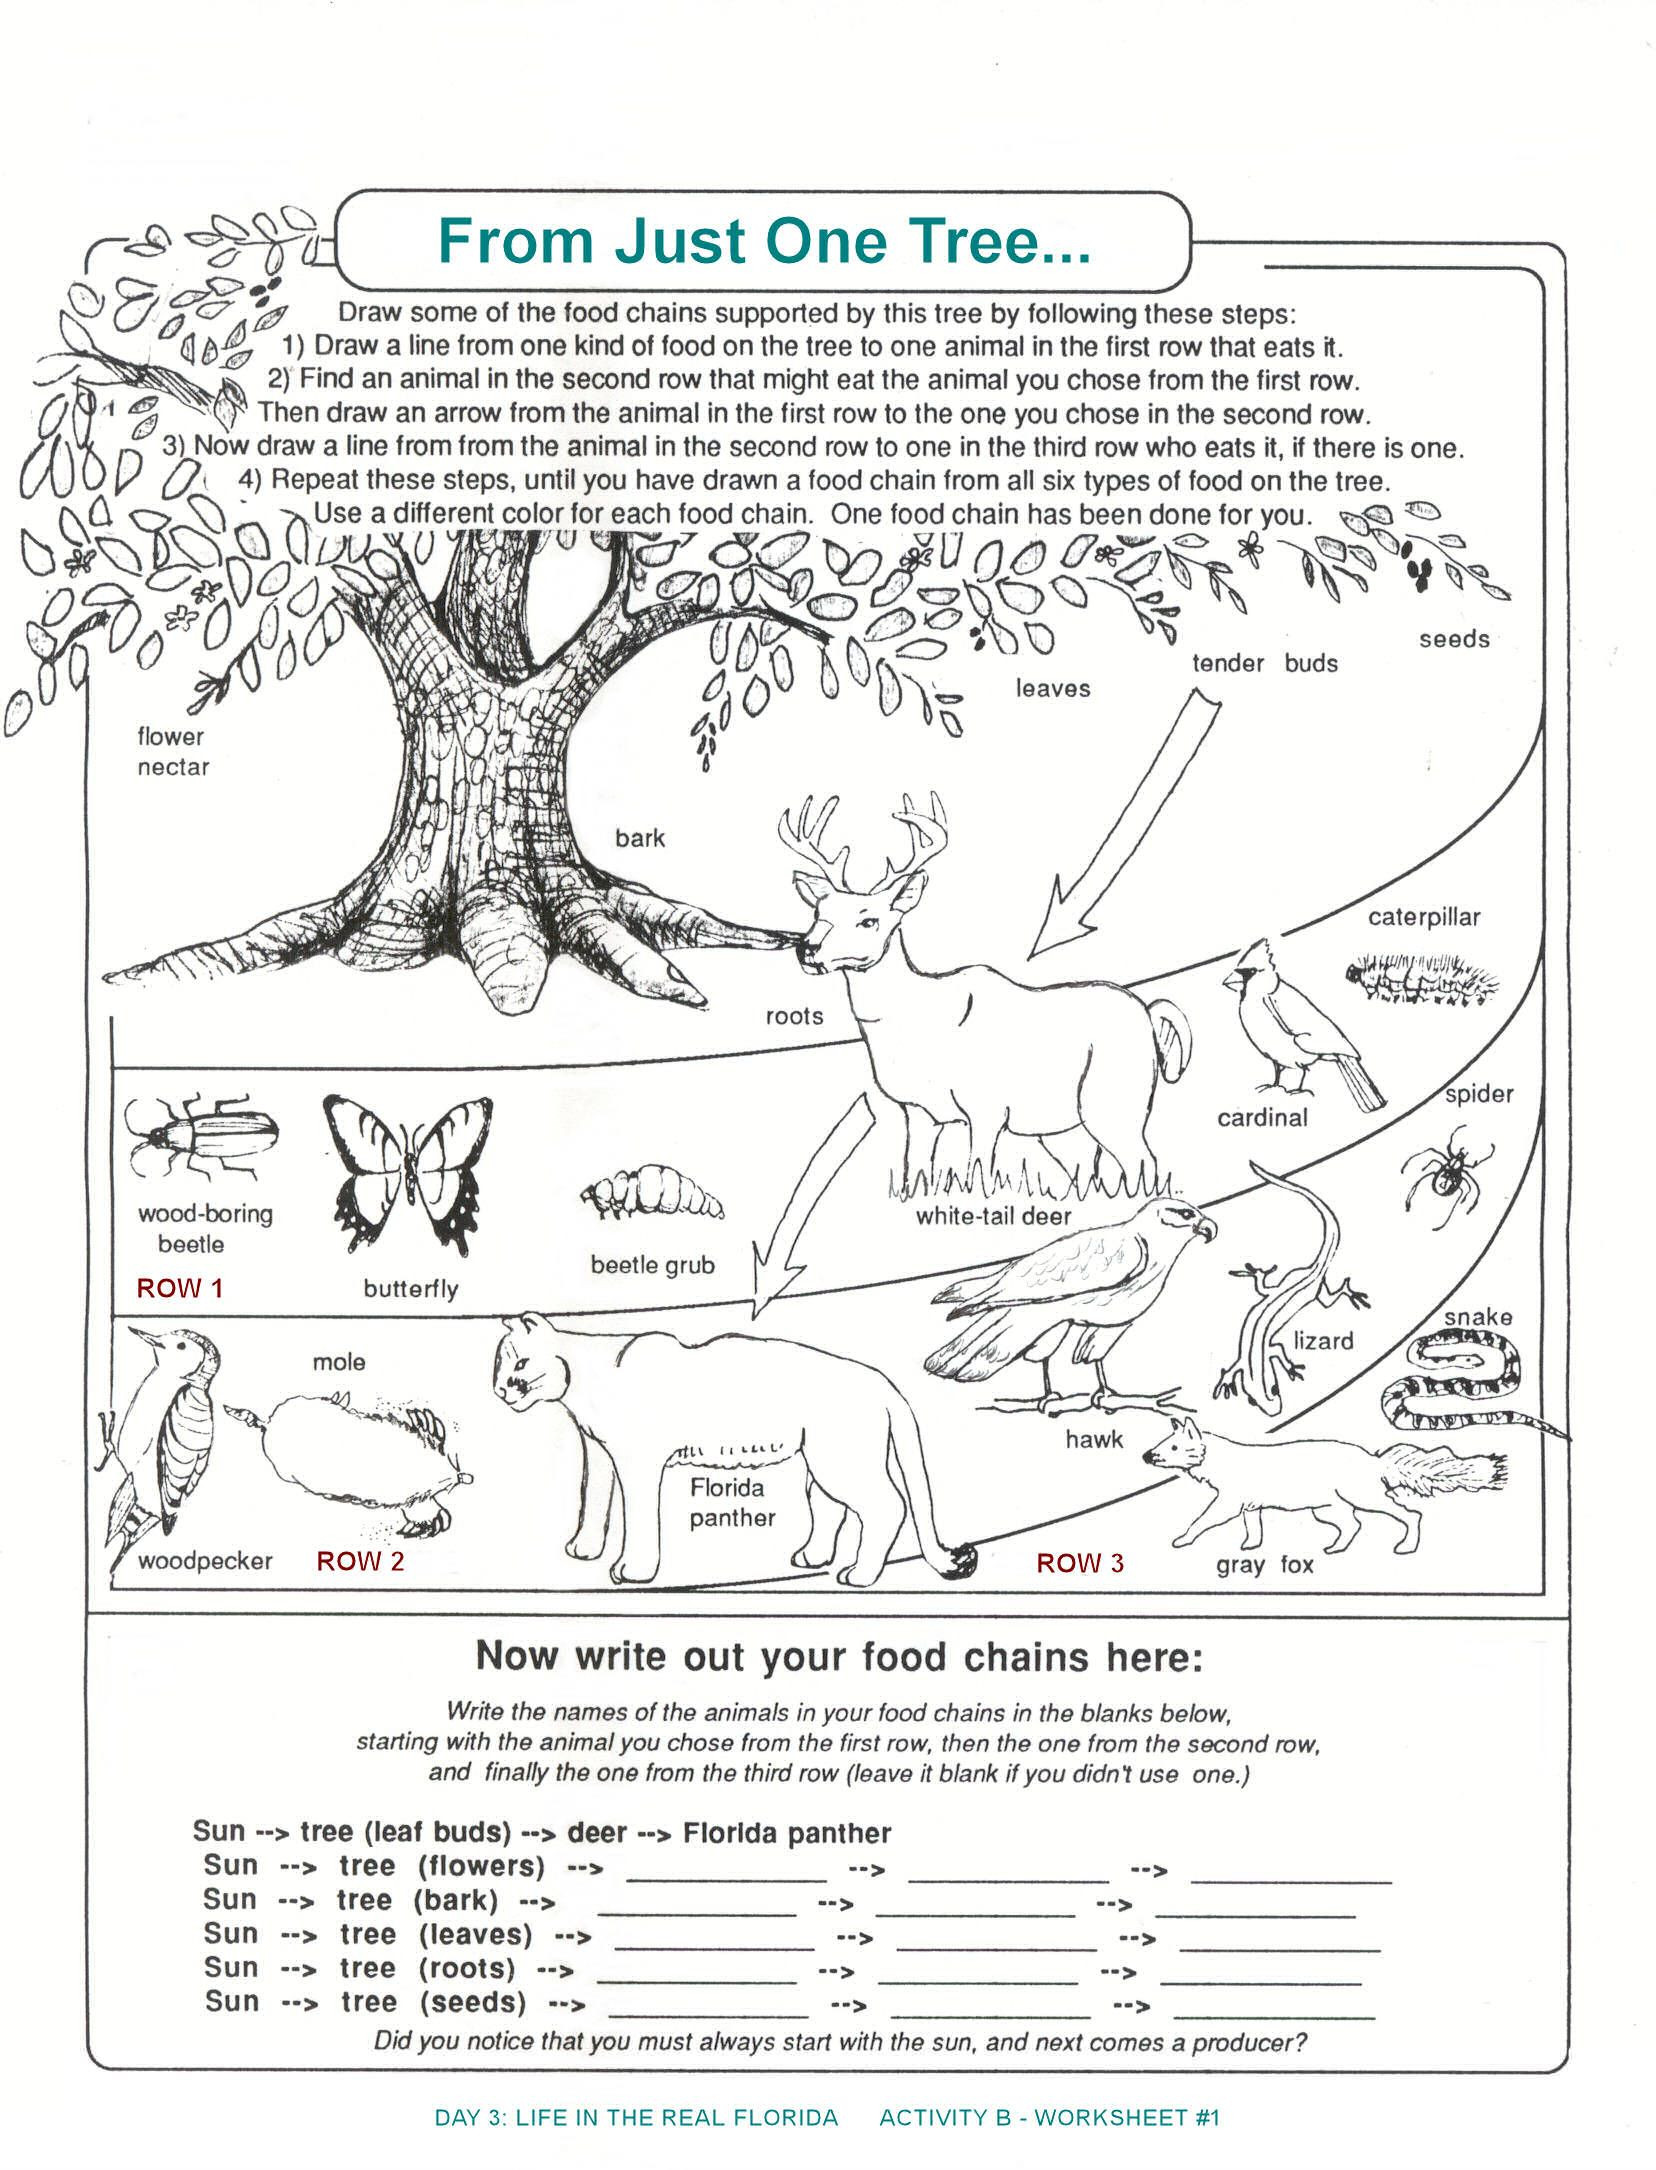 3rd Grade Ecosystem Worksheets Archbold Biological Station